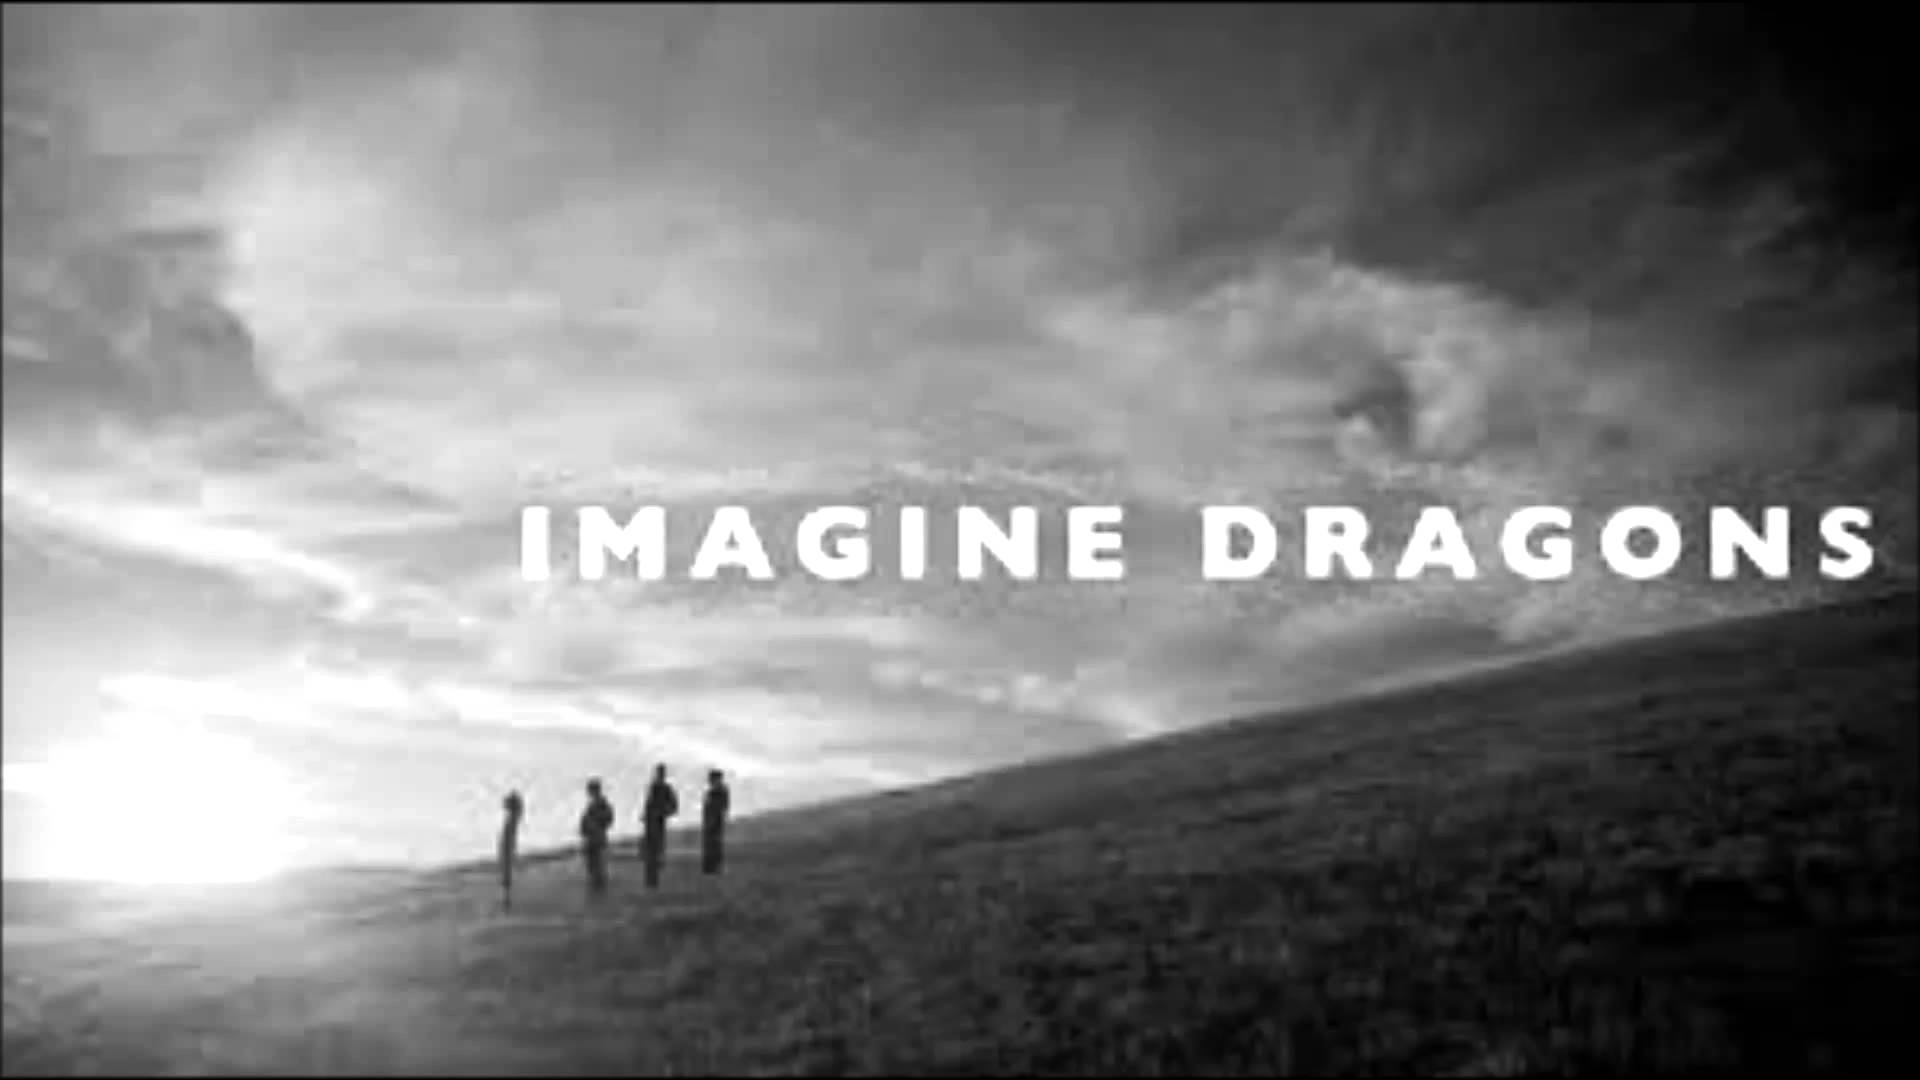 imagine dragons hd wallpapers